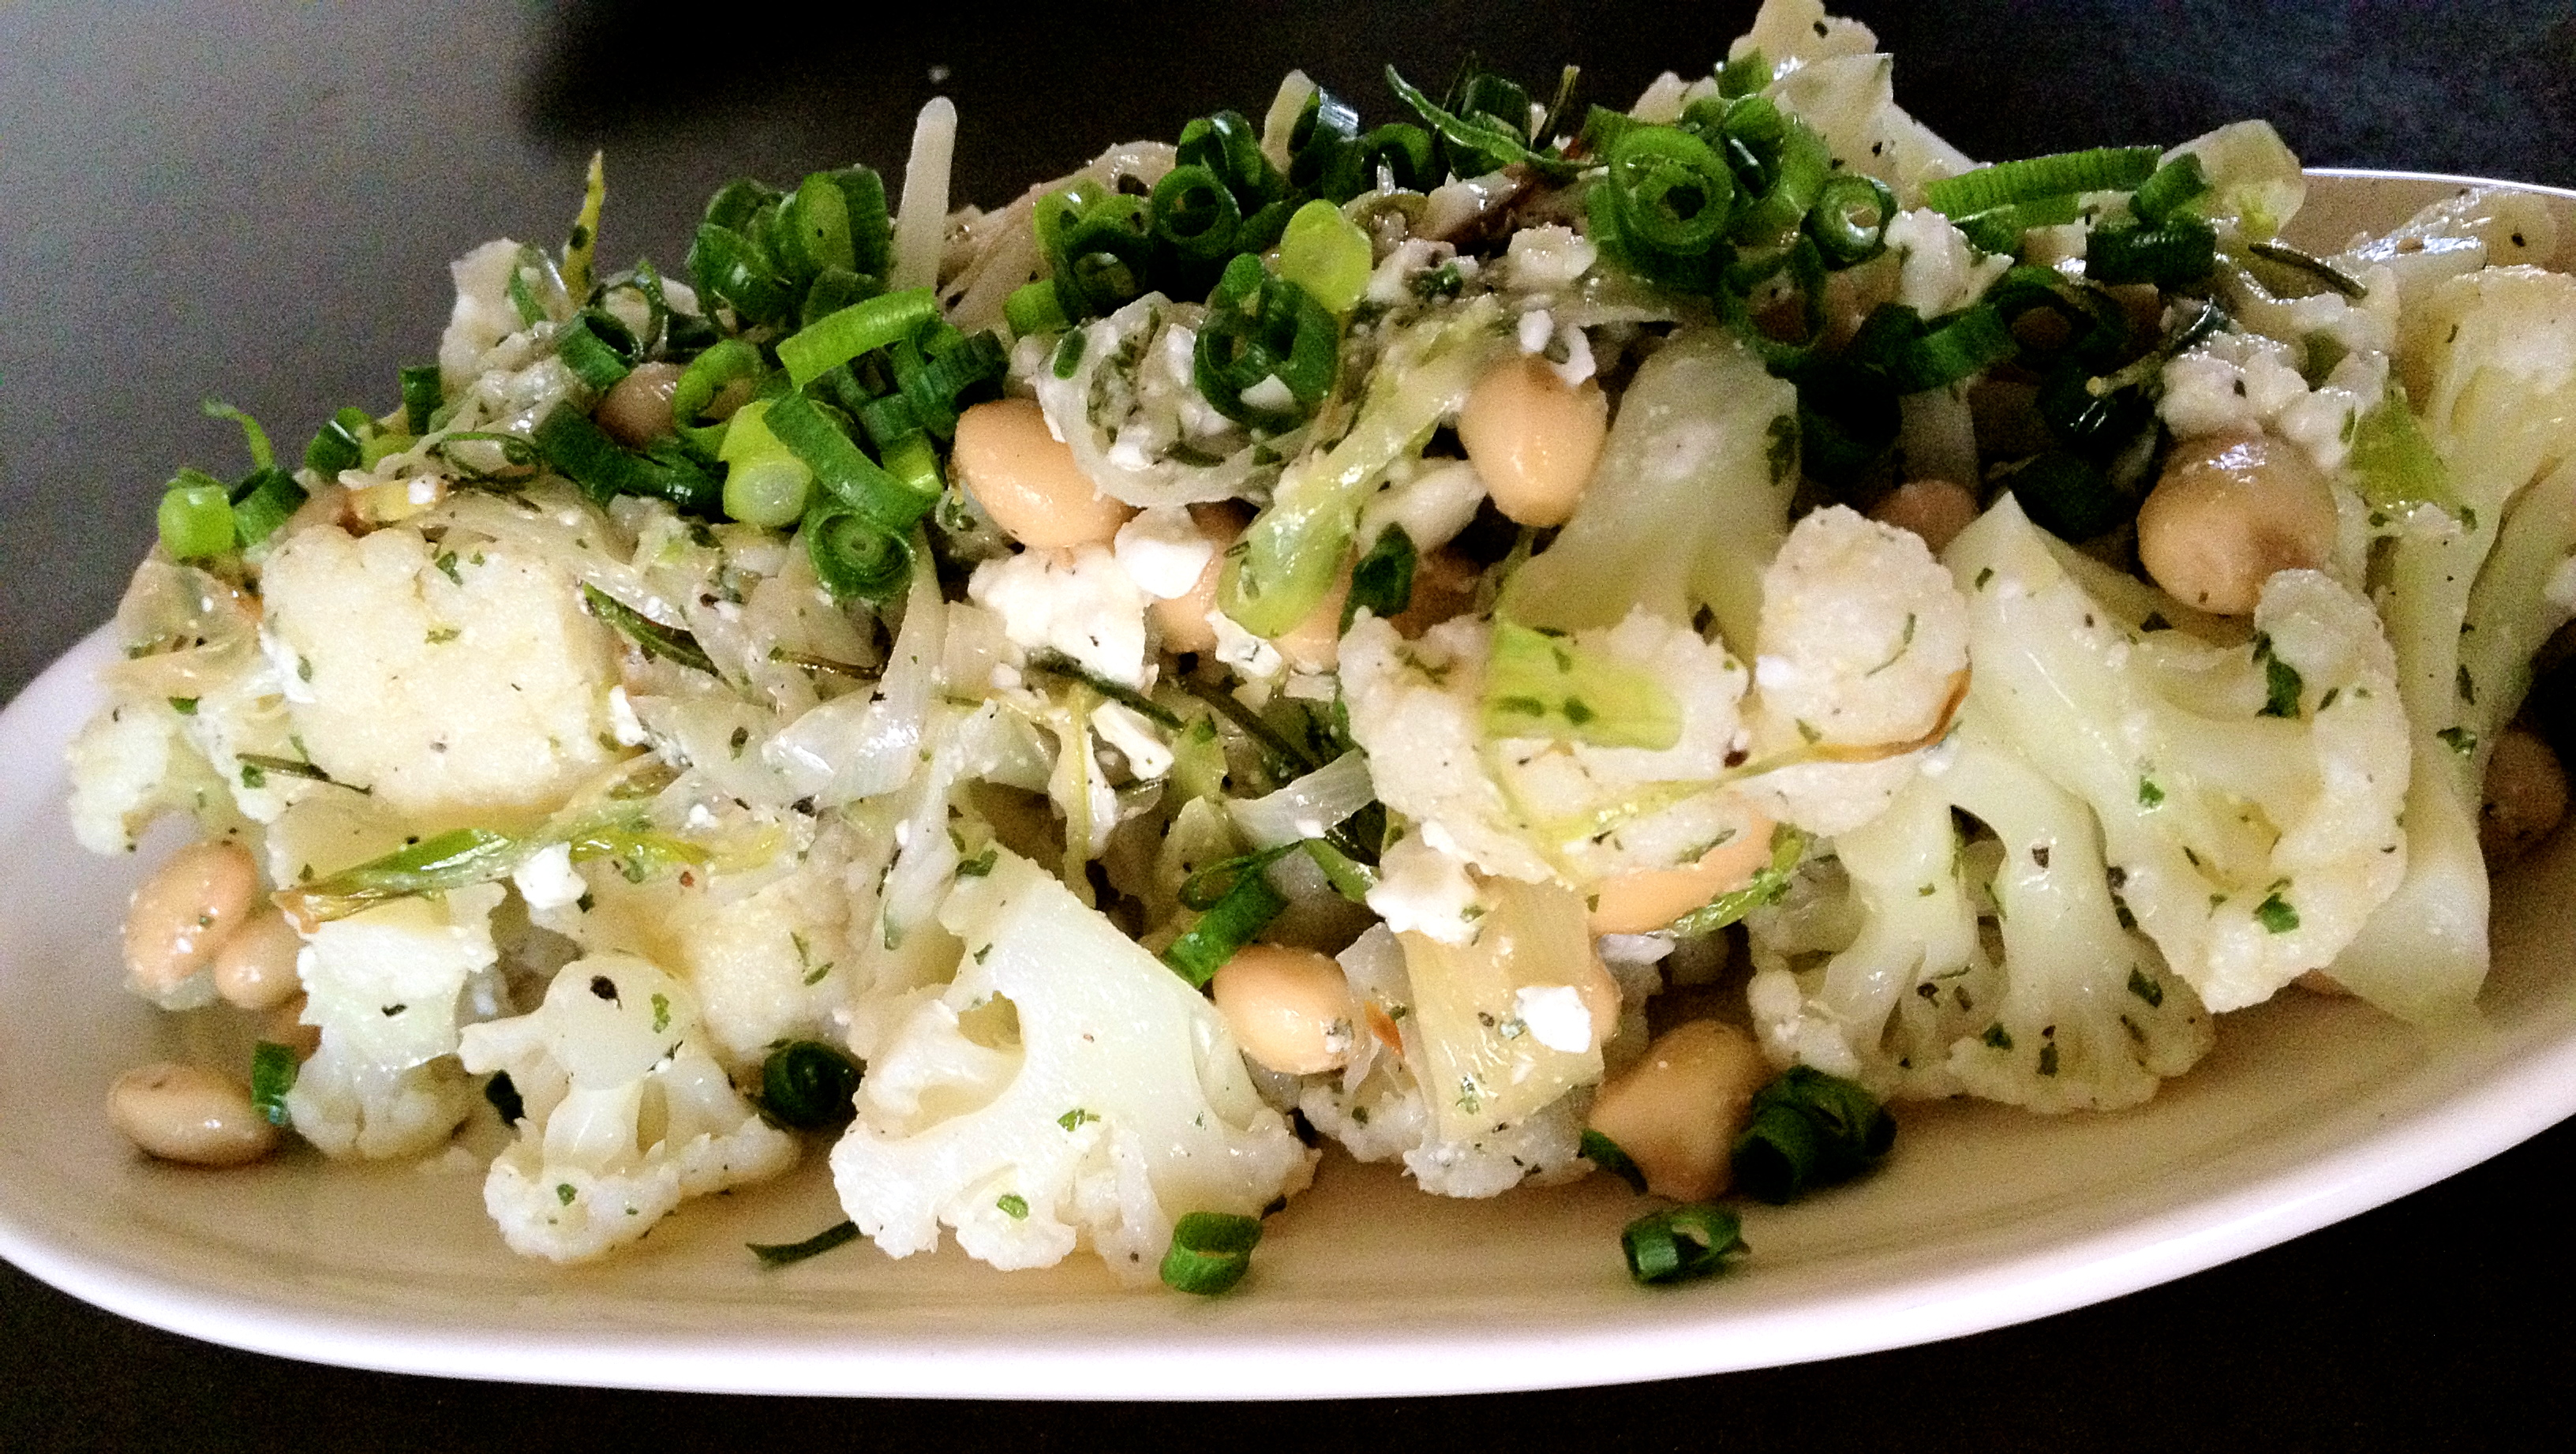 feta salad cauliflower white bean feta cauliflower salad with beans ...